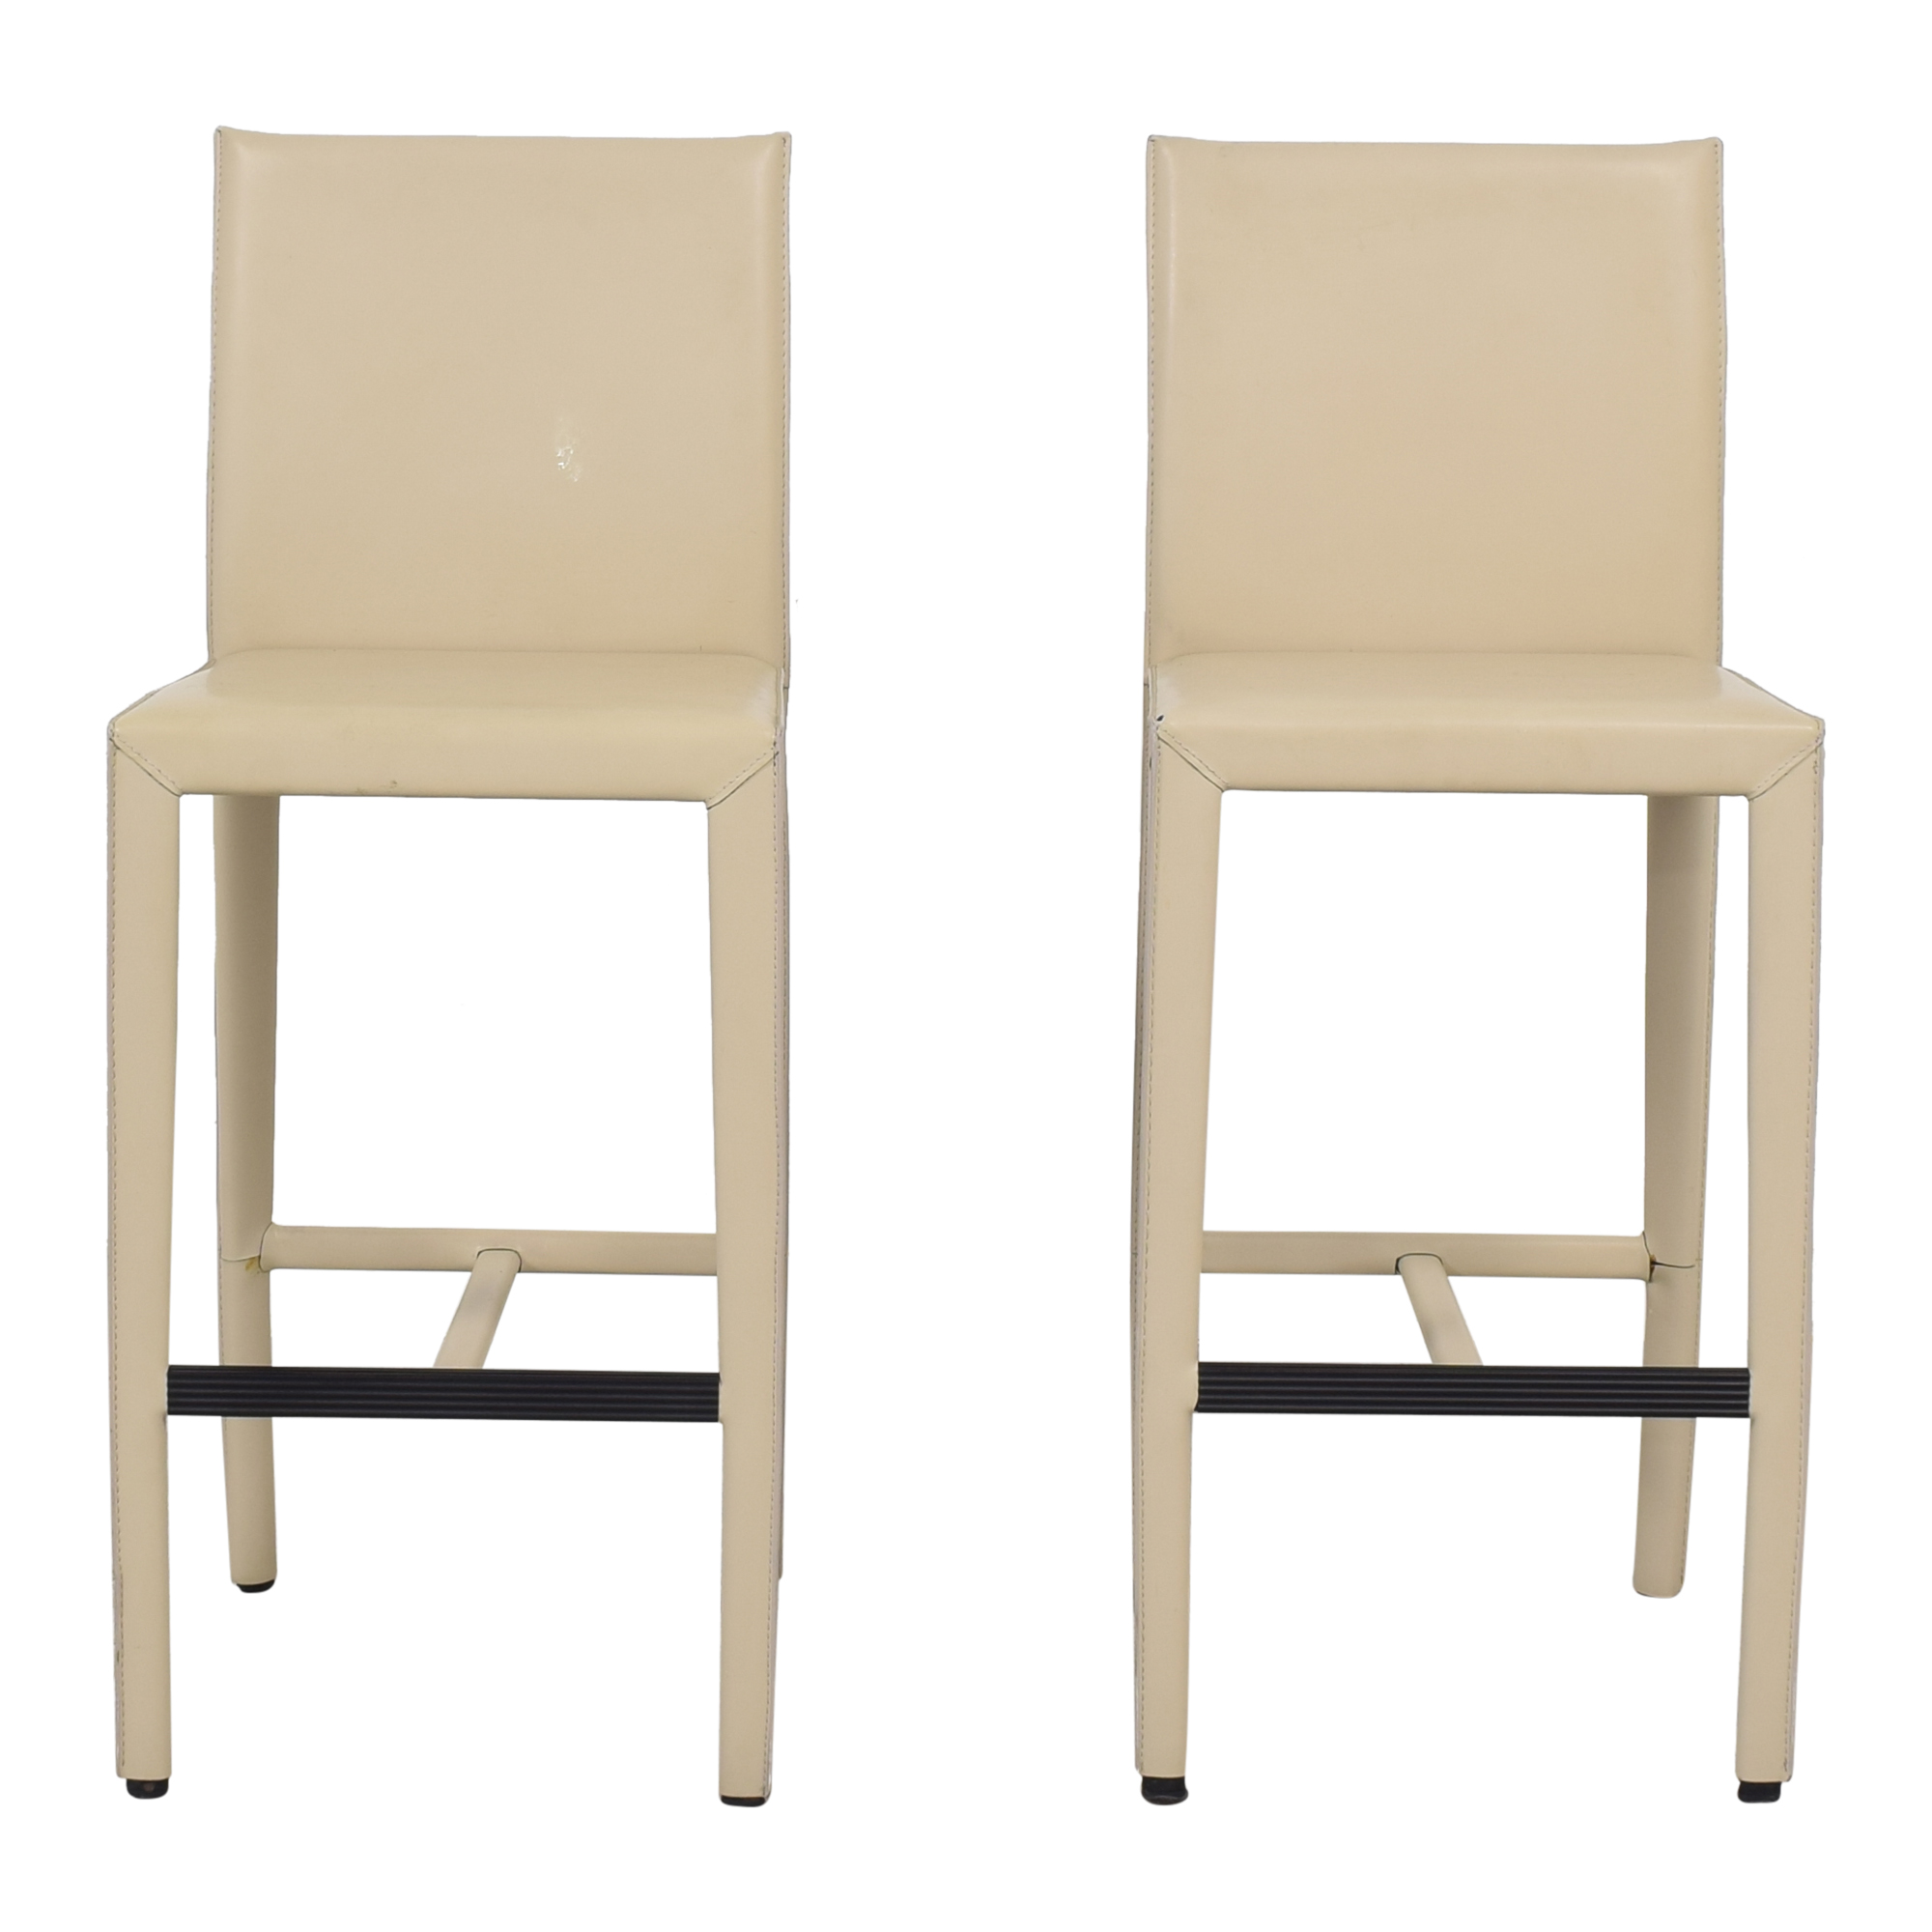 Room & Board Room & Board Sava Leather Bar Stools nj